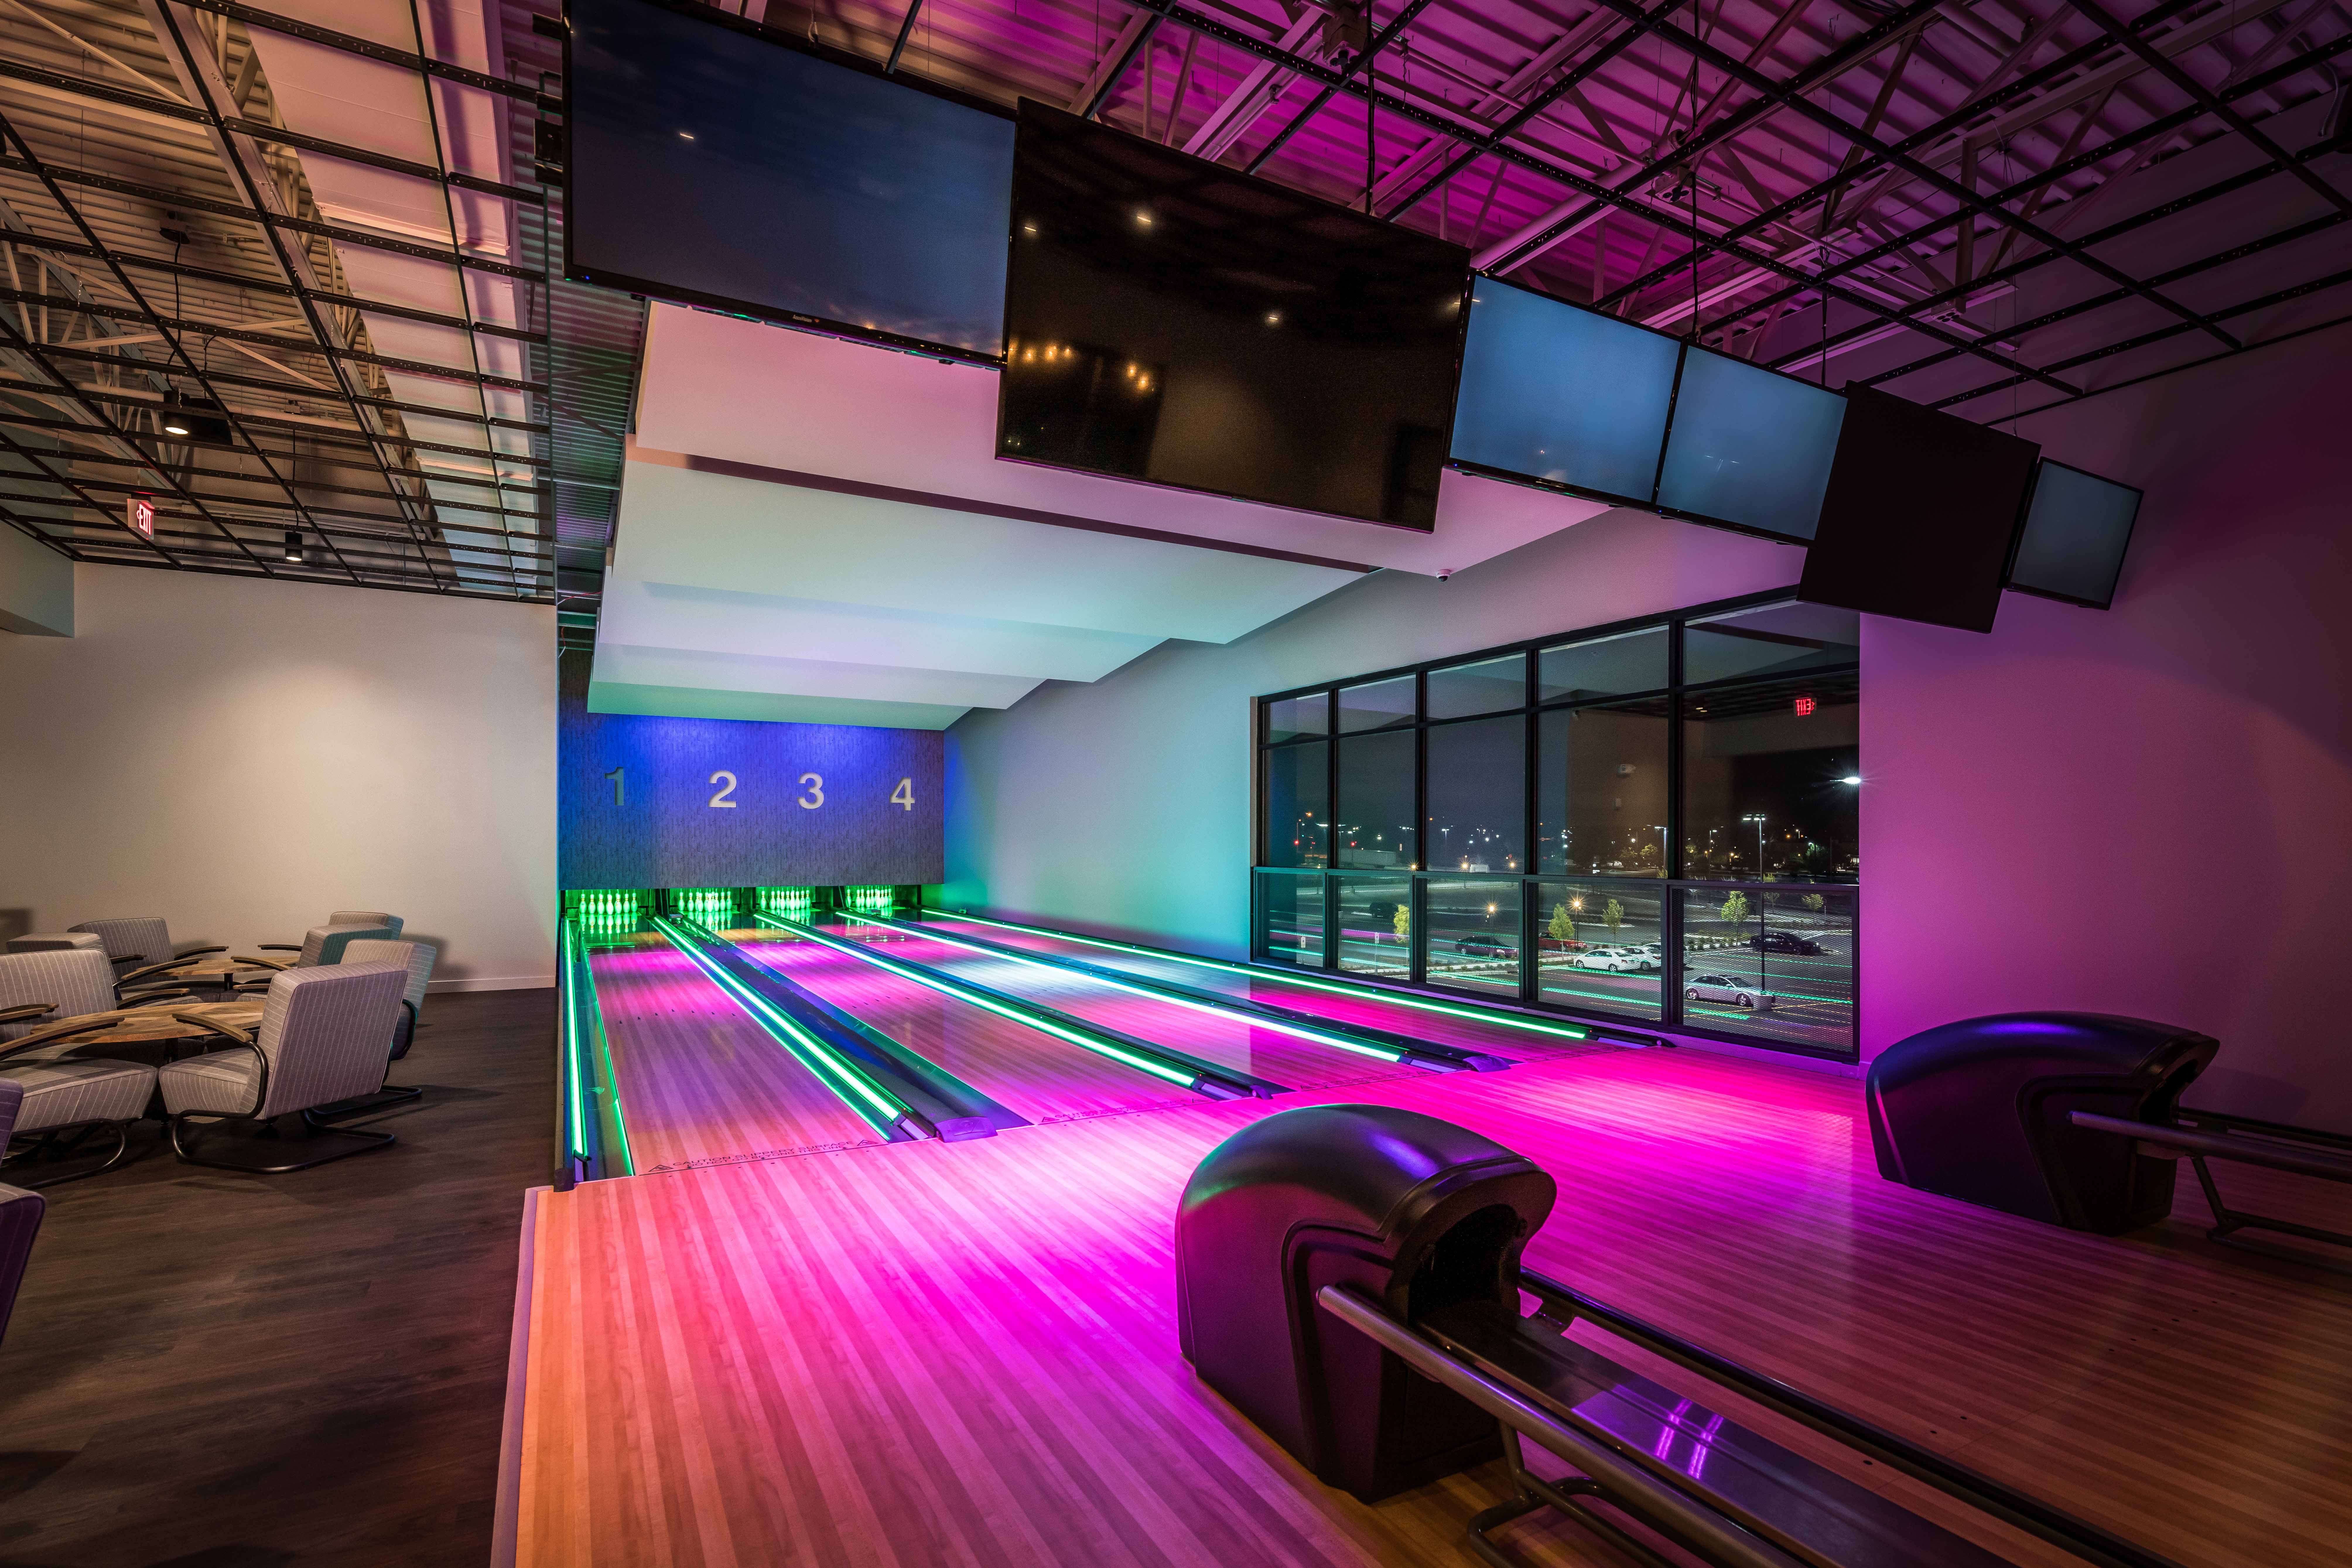 Bowling Alley with Lights